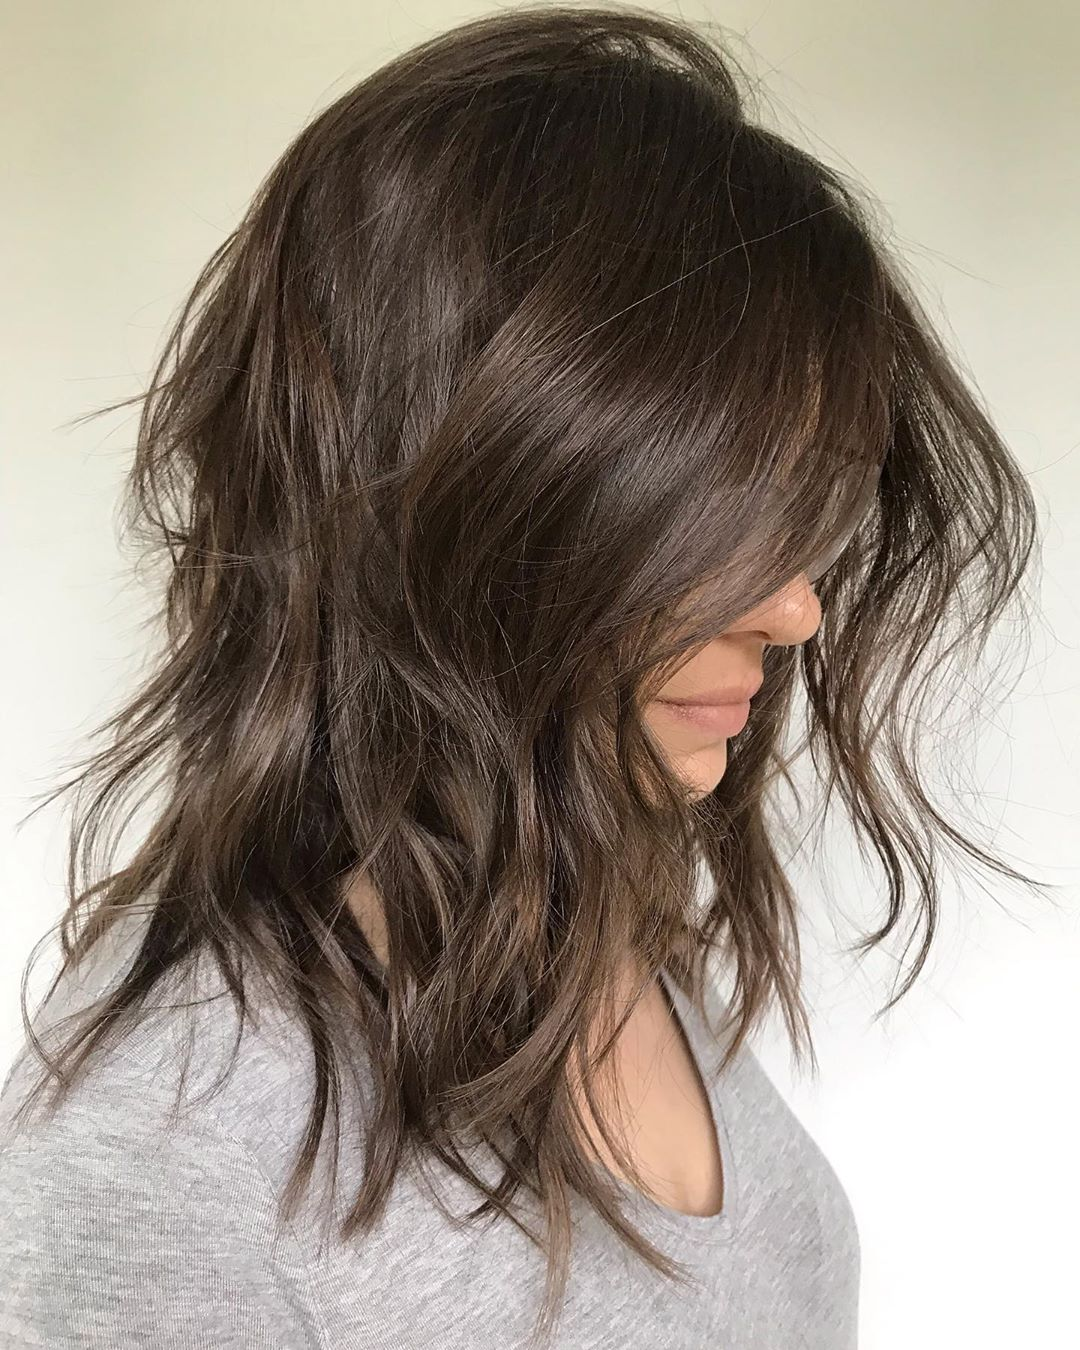 Medium Shaggy Hairstyle with Messy Waves